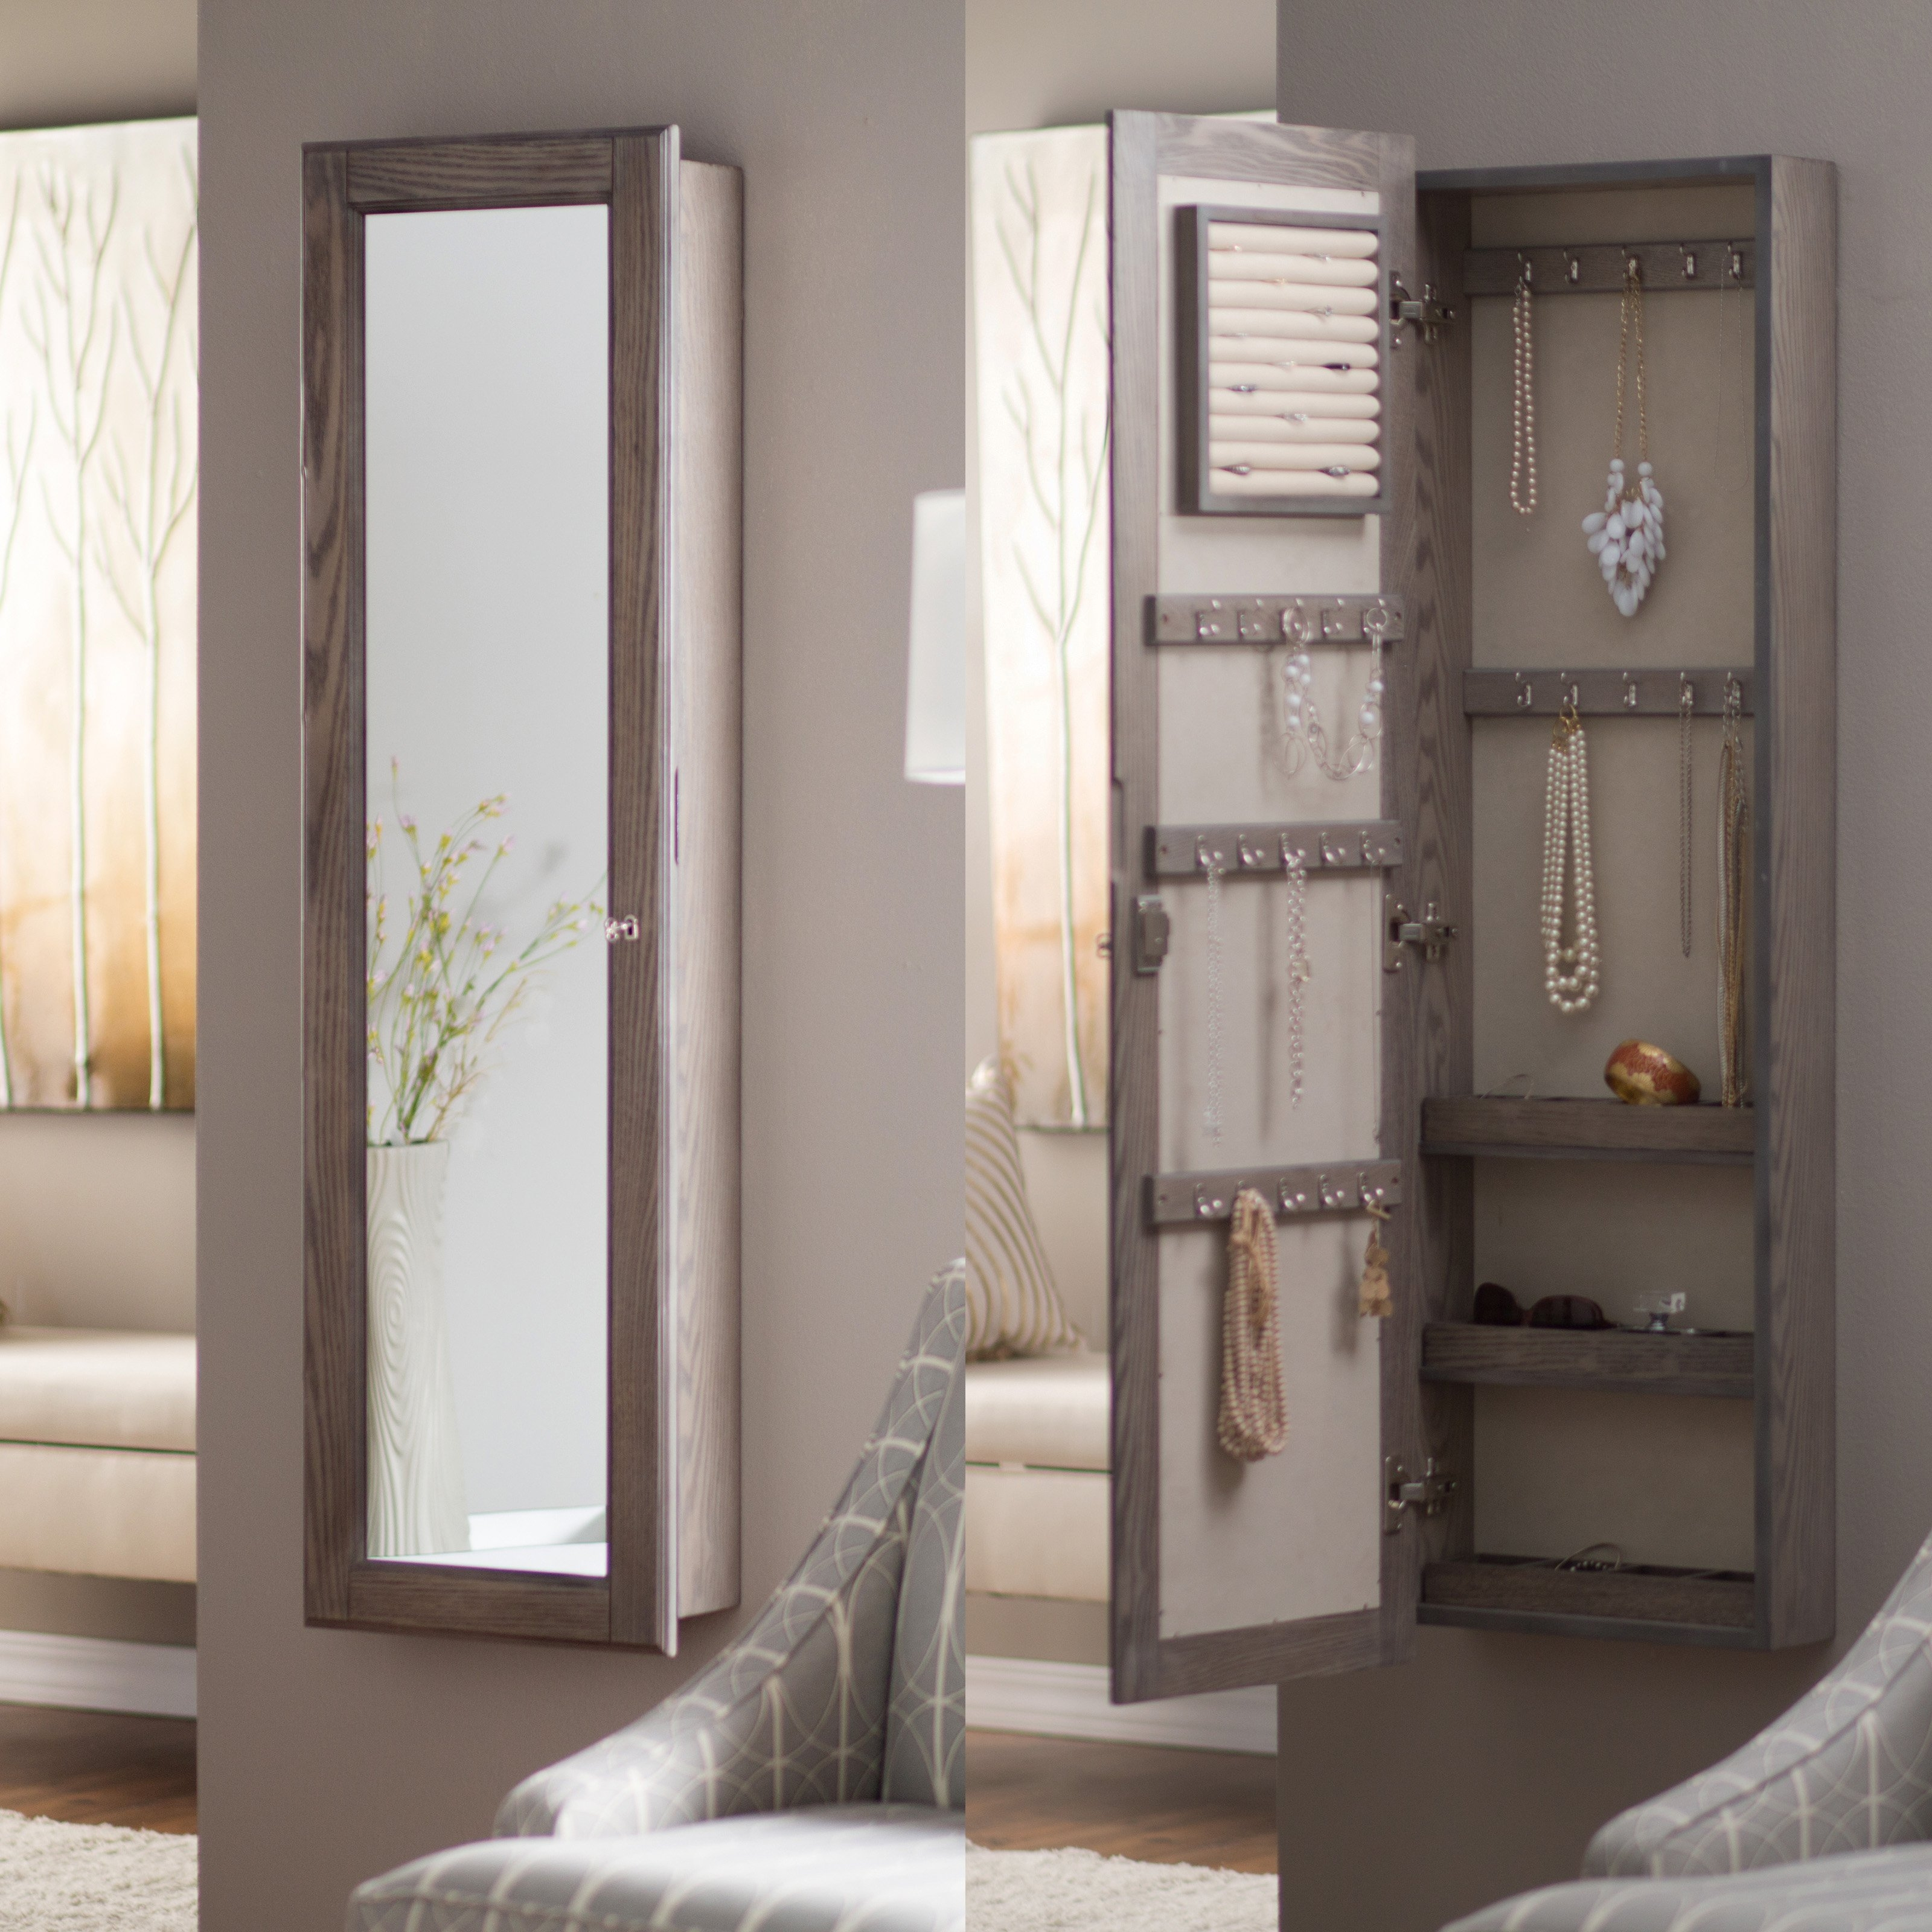 Permalink to Wall Mounted Mirrored Jewelry Cabinet